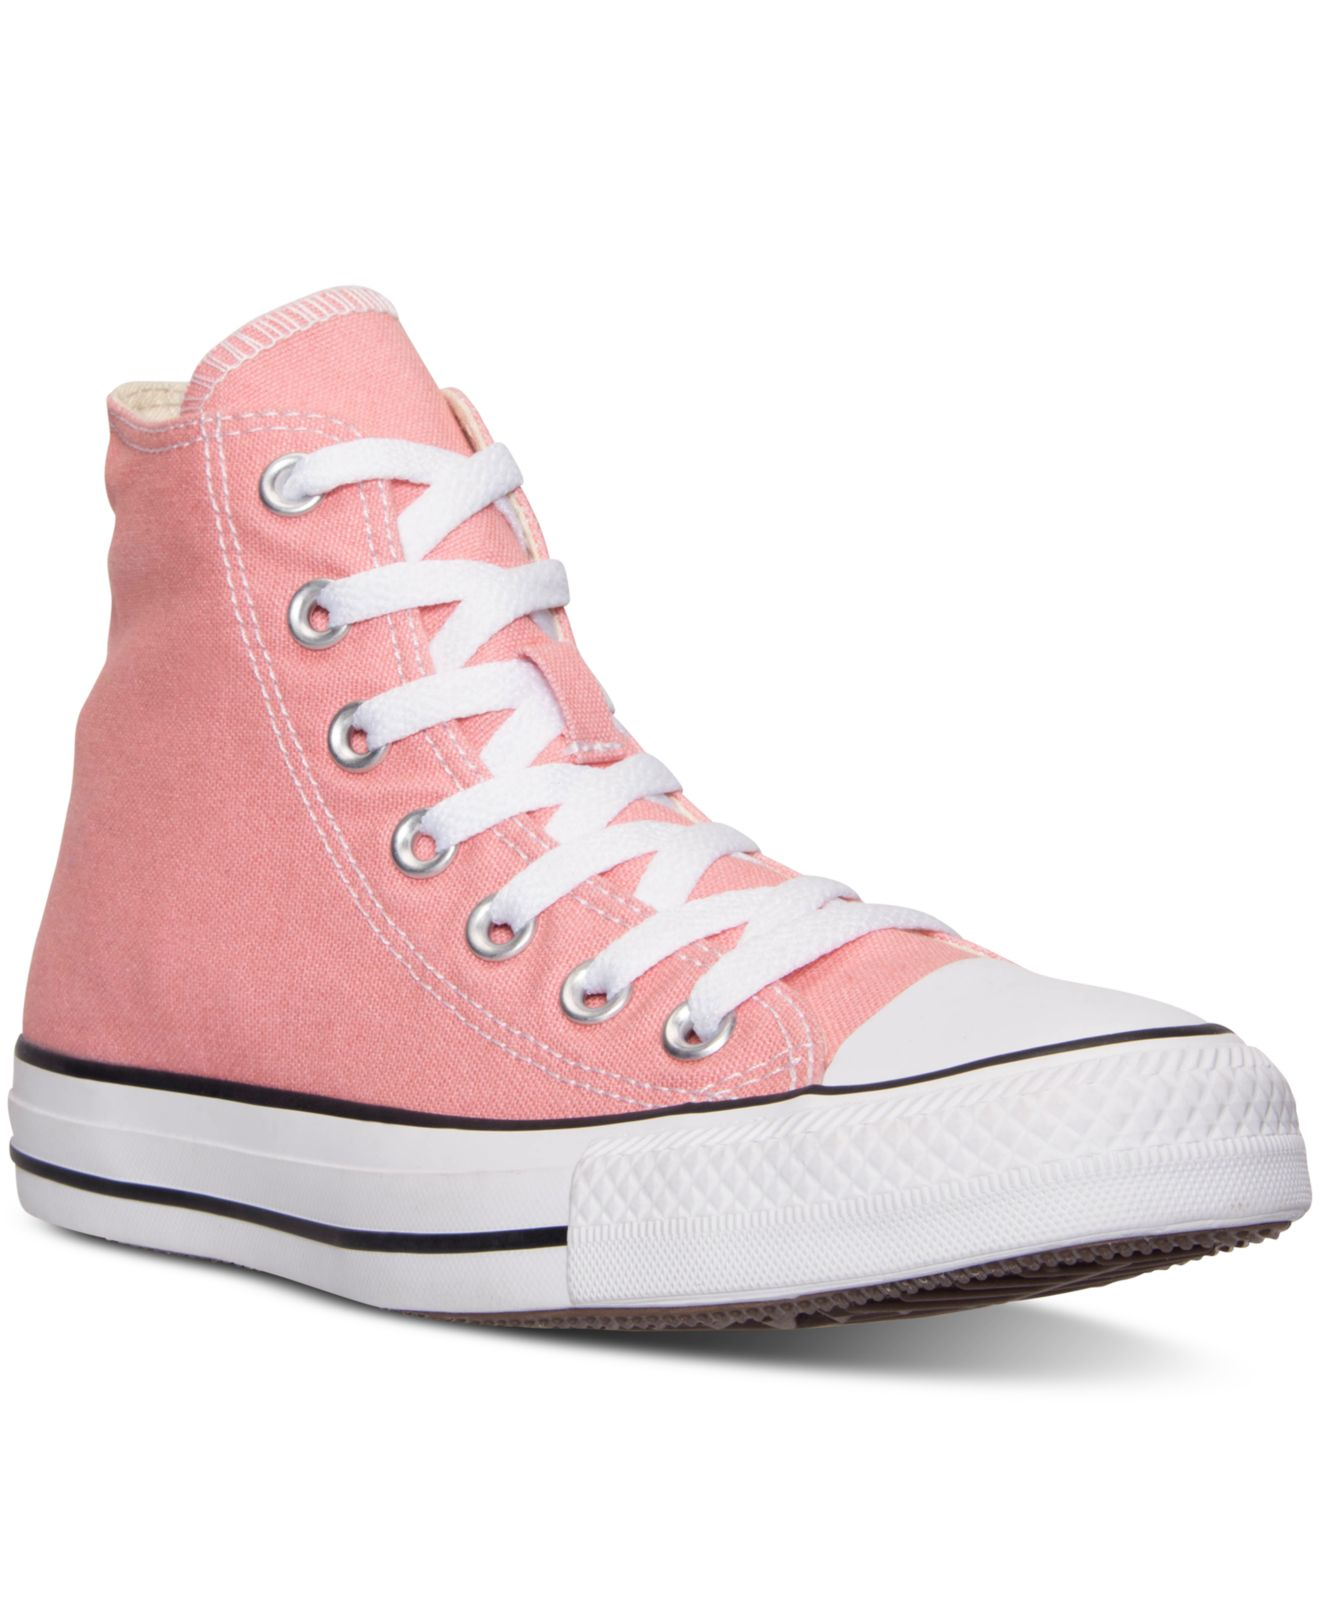 b5adebc9739b Lyst - Converse Women s Chuck Taylor Hi Casual Sneakers From Finish ...